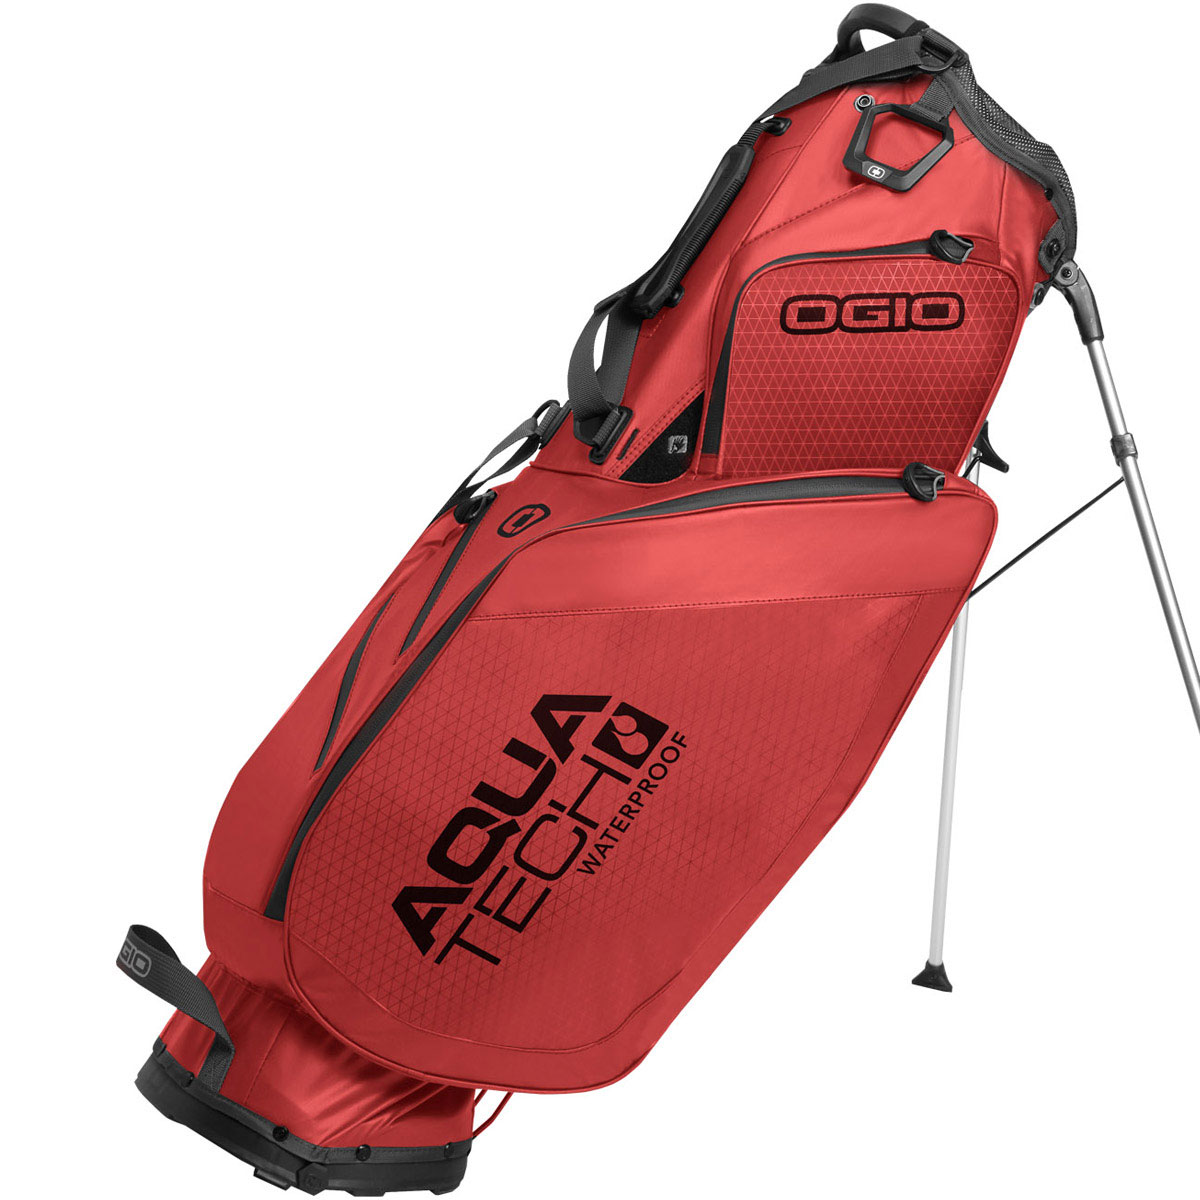 7 way golf stand bag 2000 silverado trailer wiring diagram ogio gotham aquatech waterproof carry